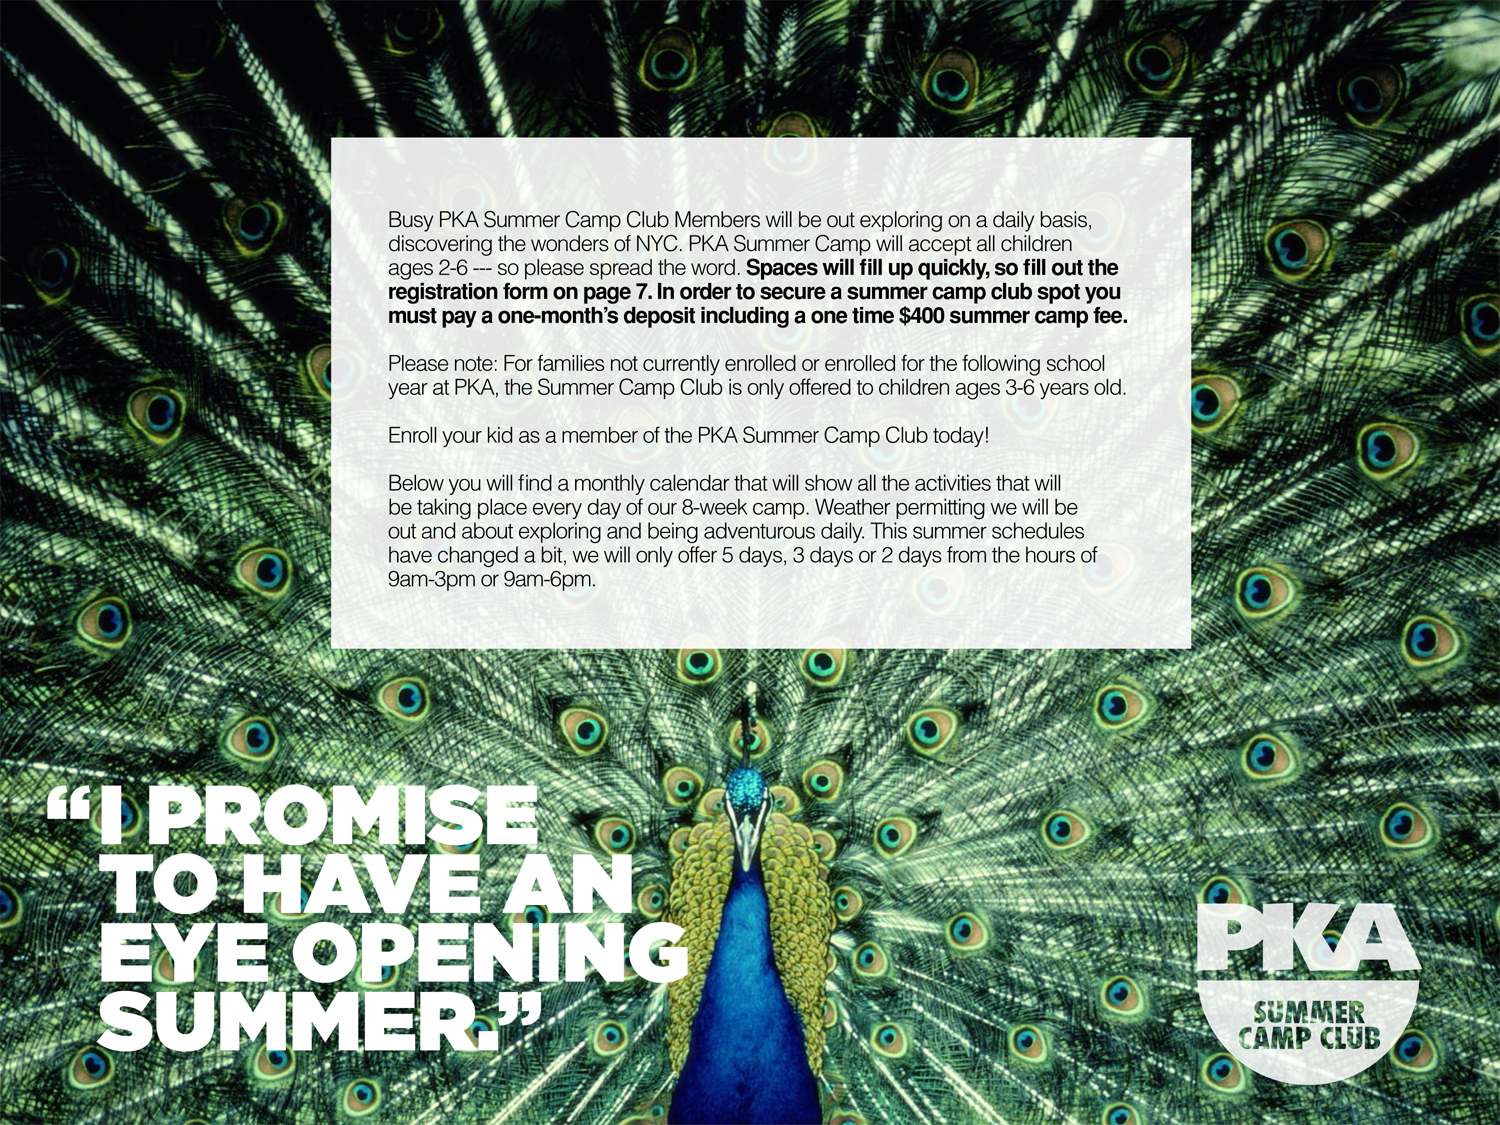 PKA Summer Camp Club Brochure-3.jpg